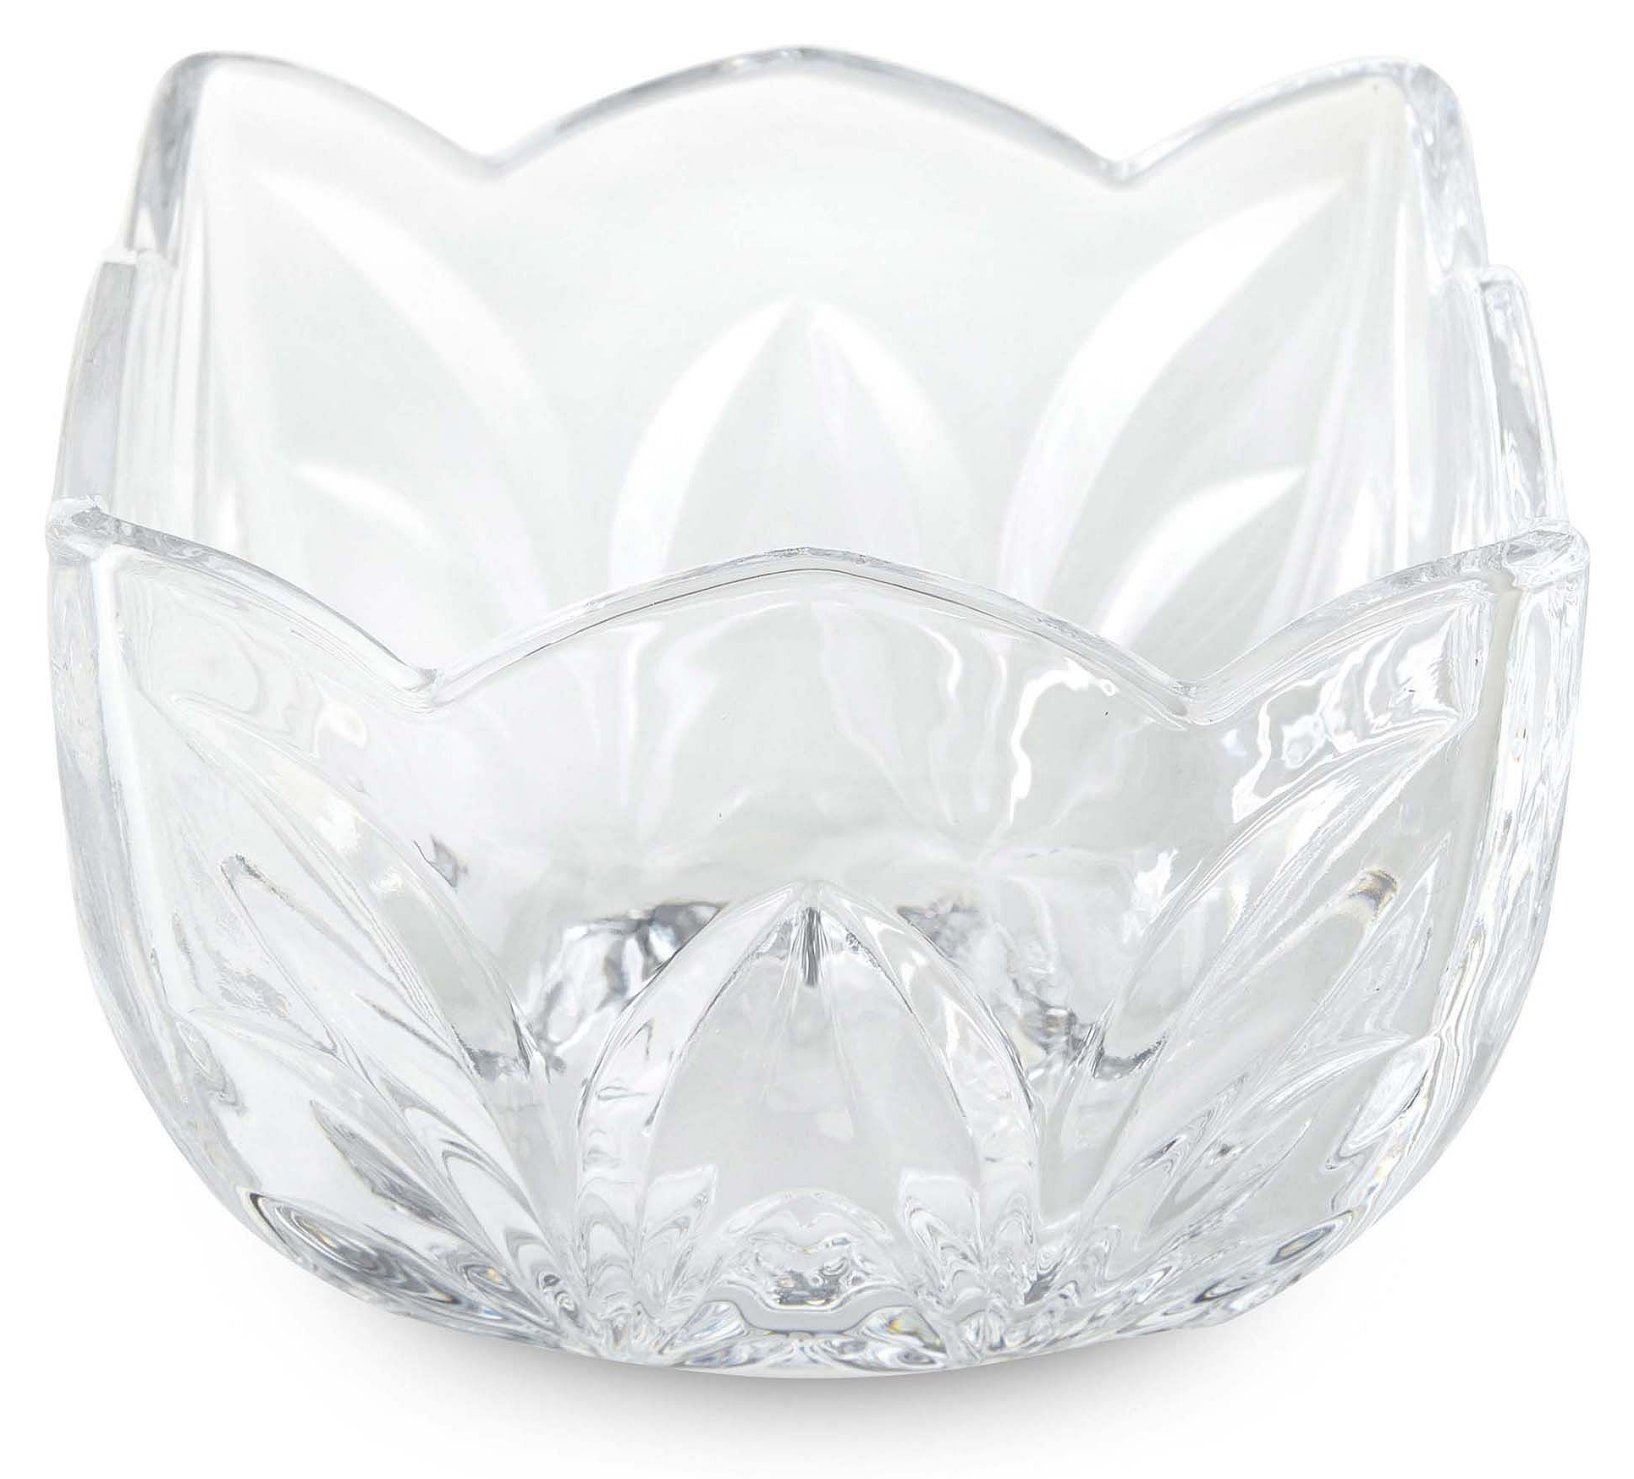 Exciting shannon crystal by godinger for interior home accessories ideas with shannon crystal by godinger dublin